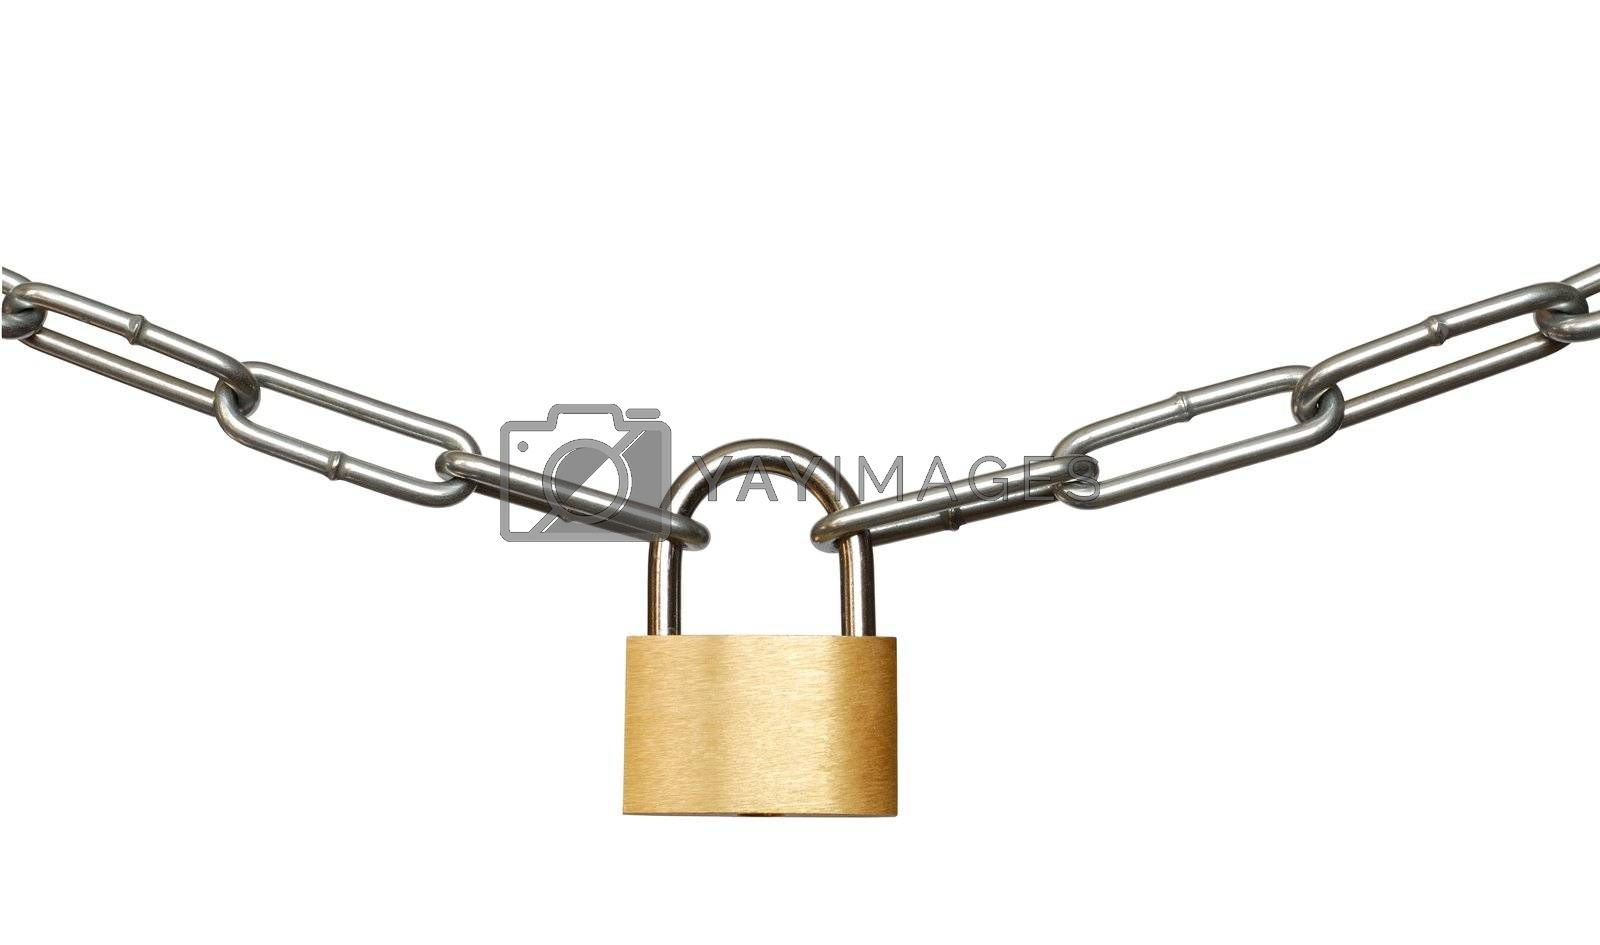 Isolated padlock and chain